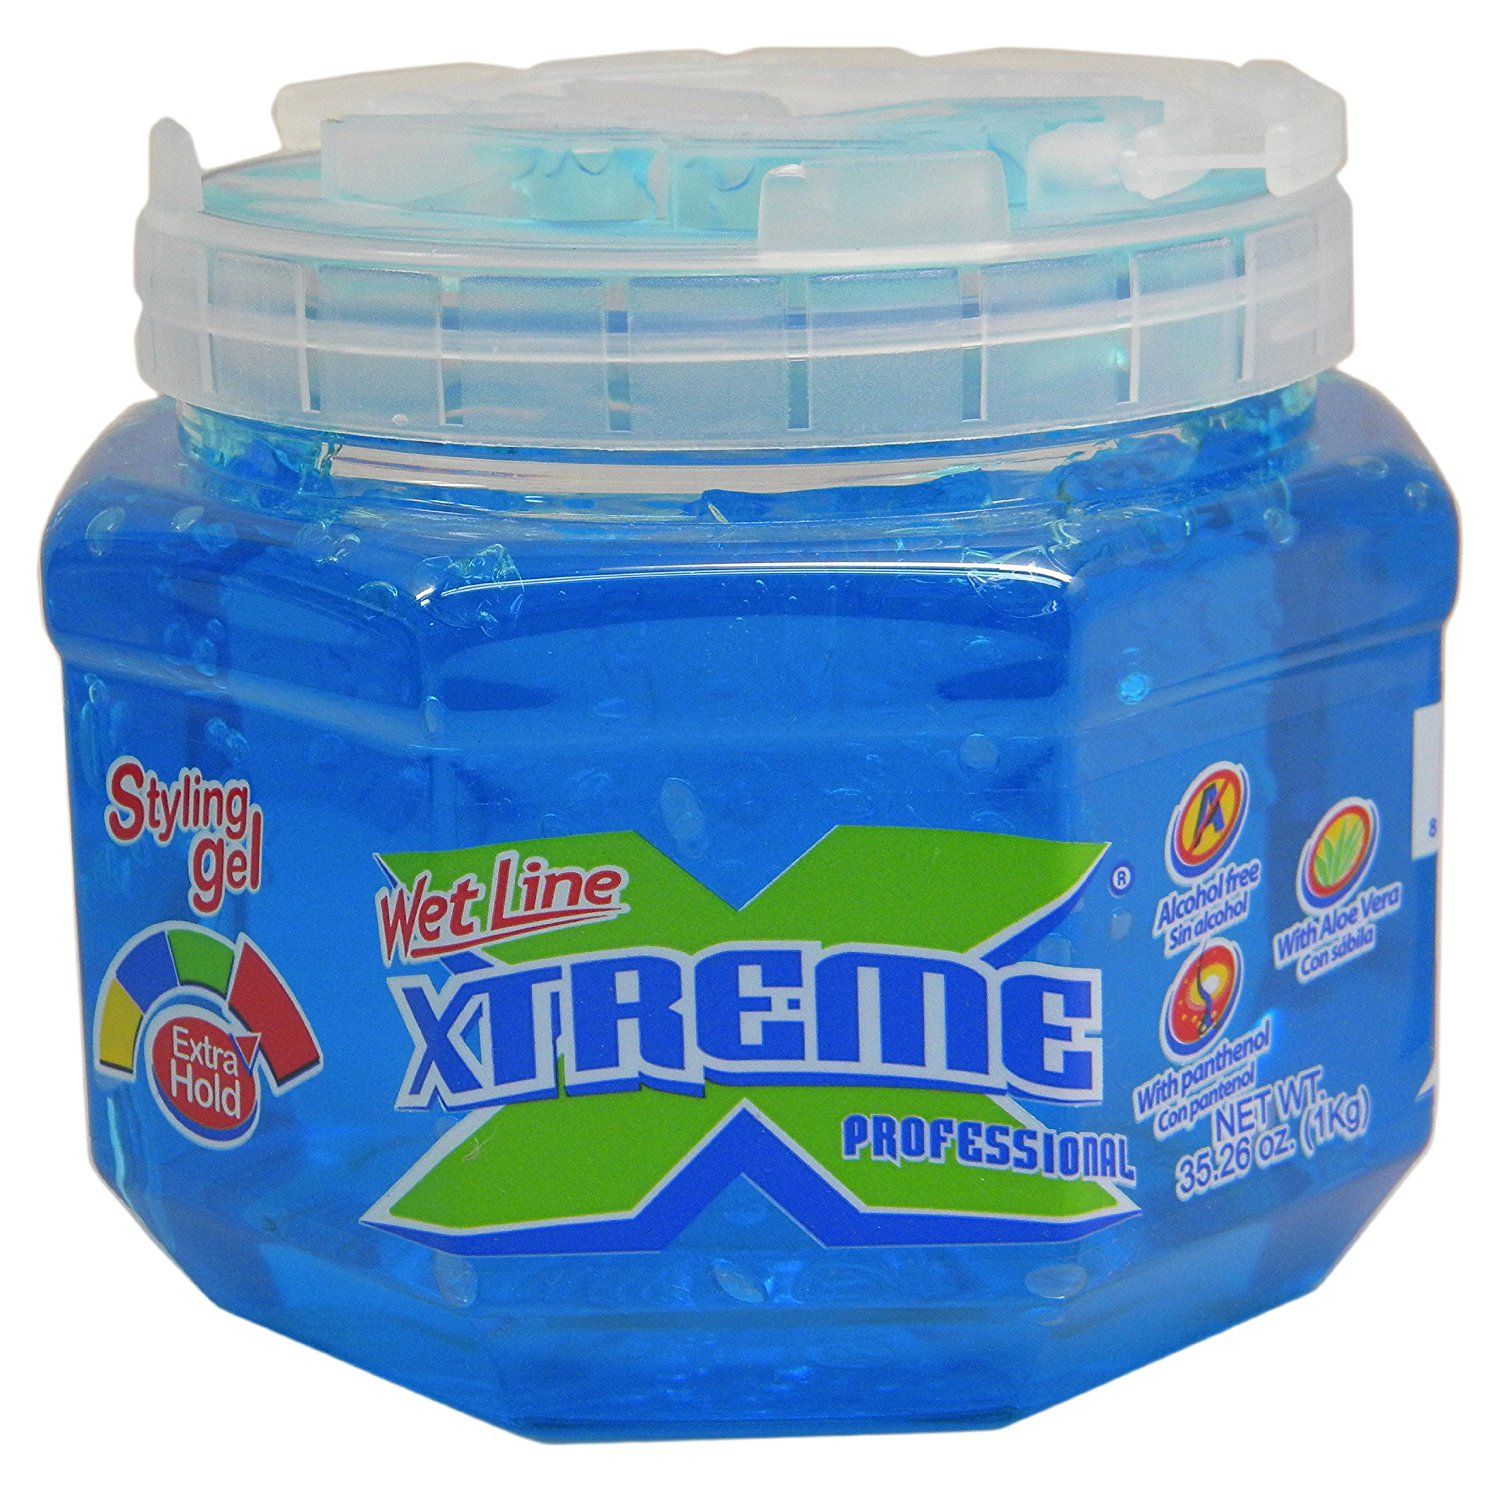 Xtreme Professional Wet Line Styling Gel Extra Hold Blue